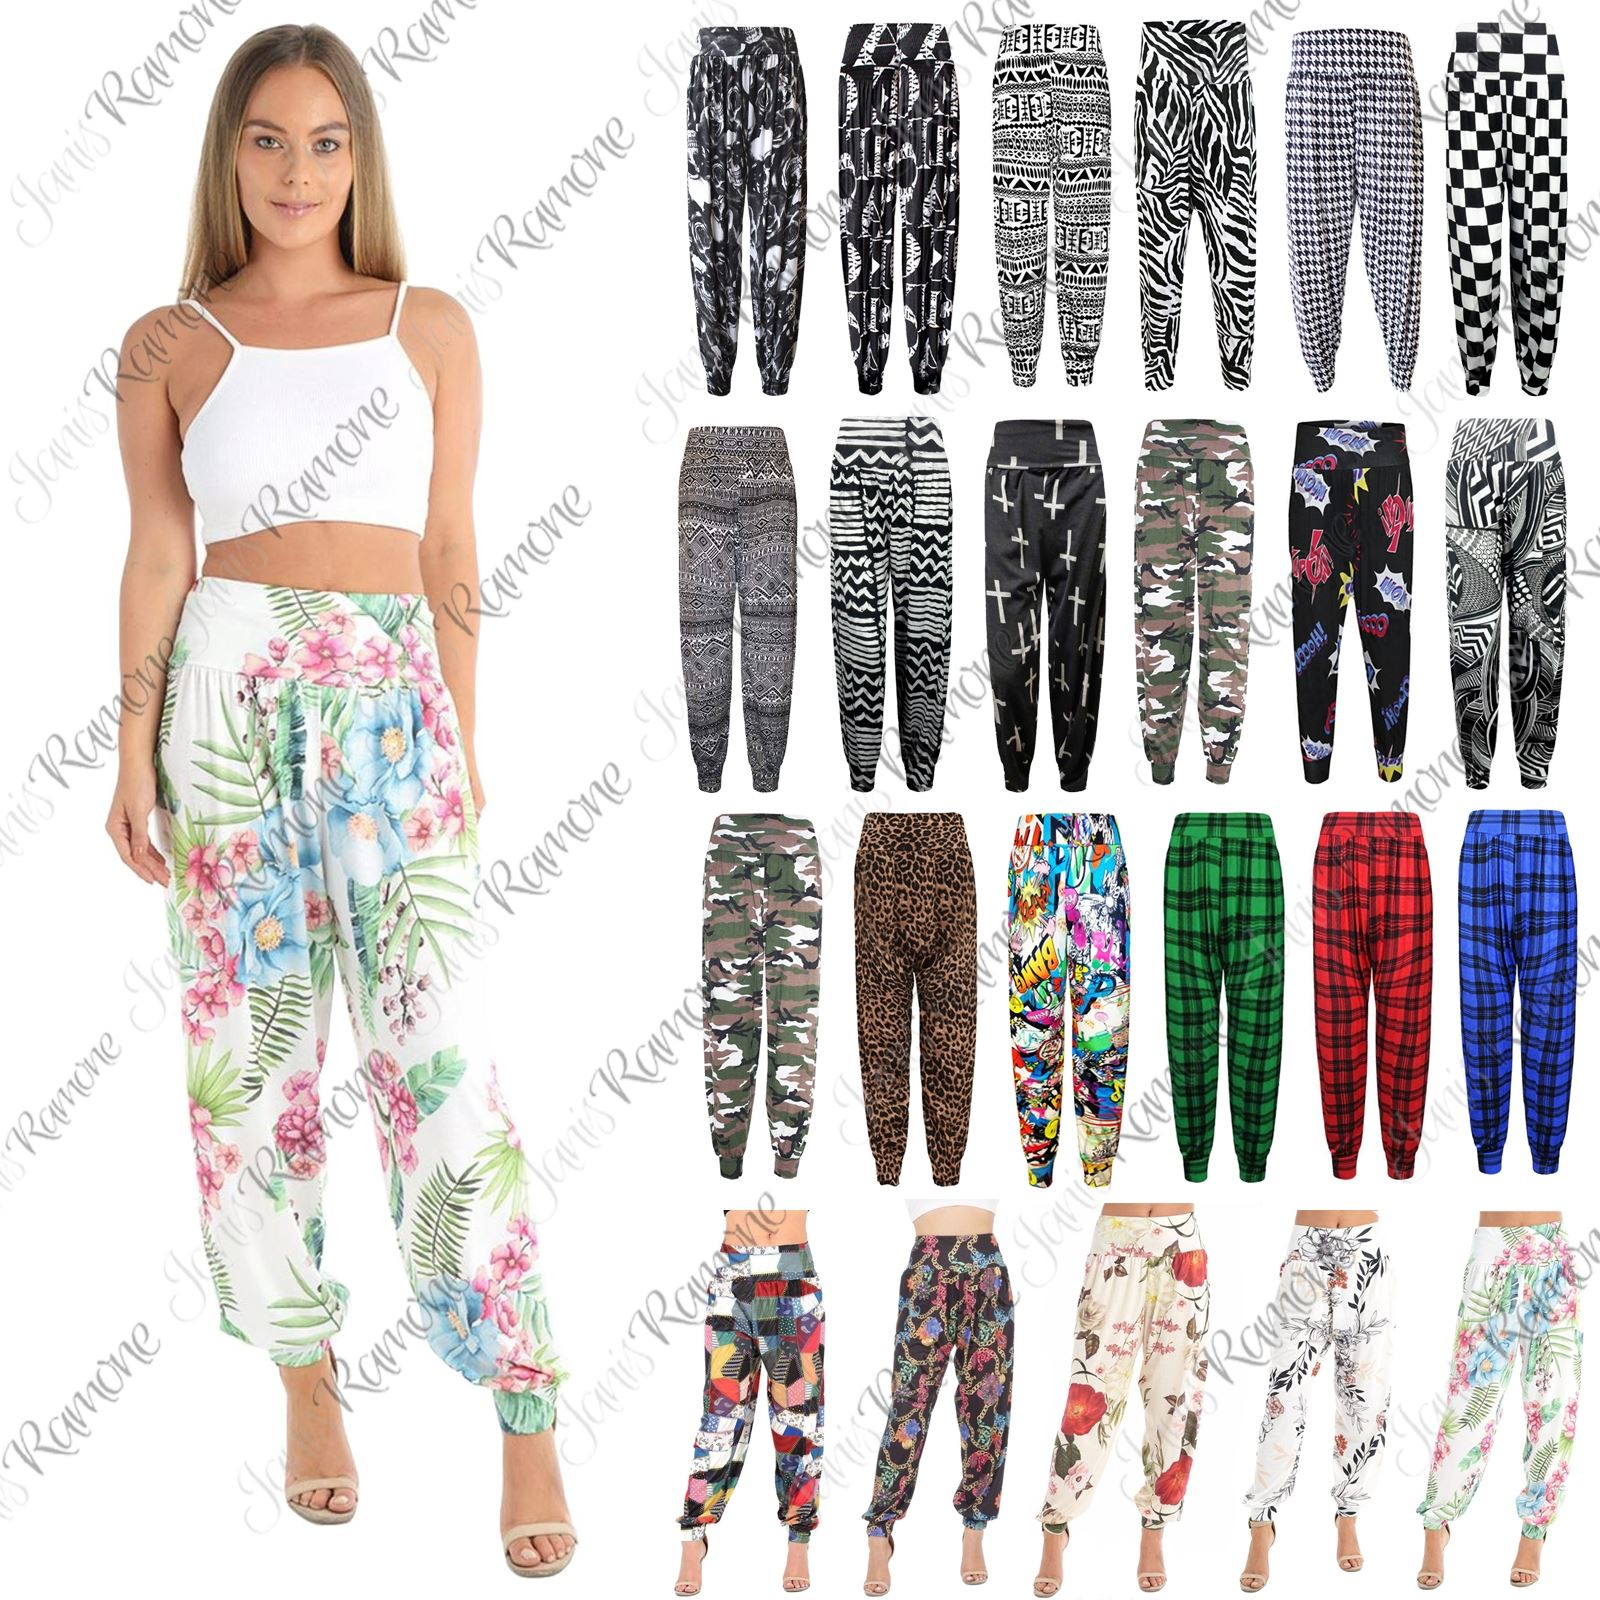 NEW LADIES WOMENS AZTEC PRINT HAREM TROUSERS PANTS ALI BABA PANTS CUFF BOTTOMS